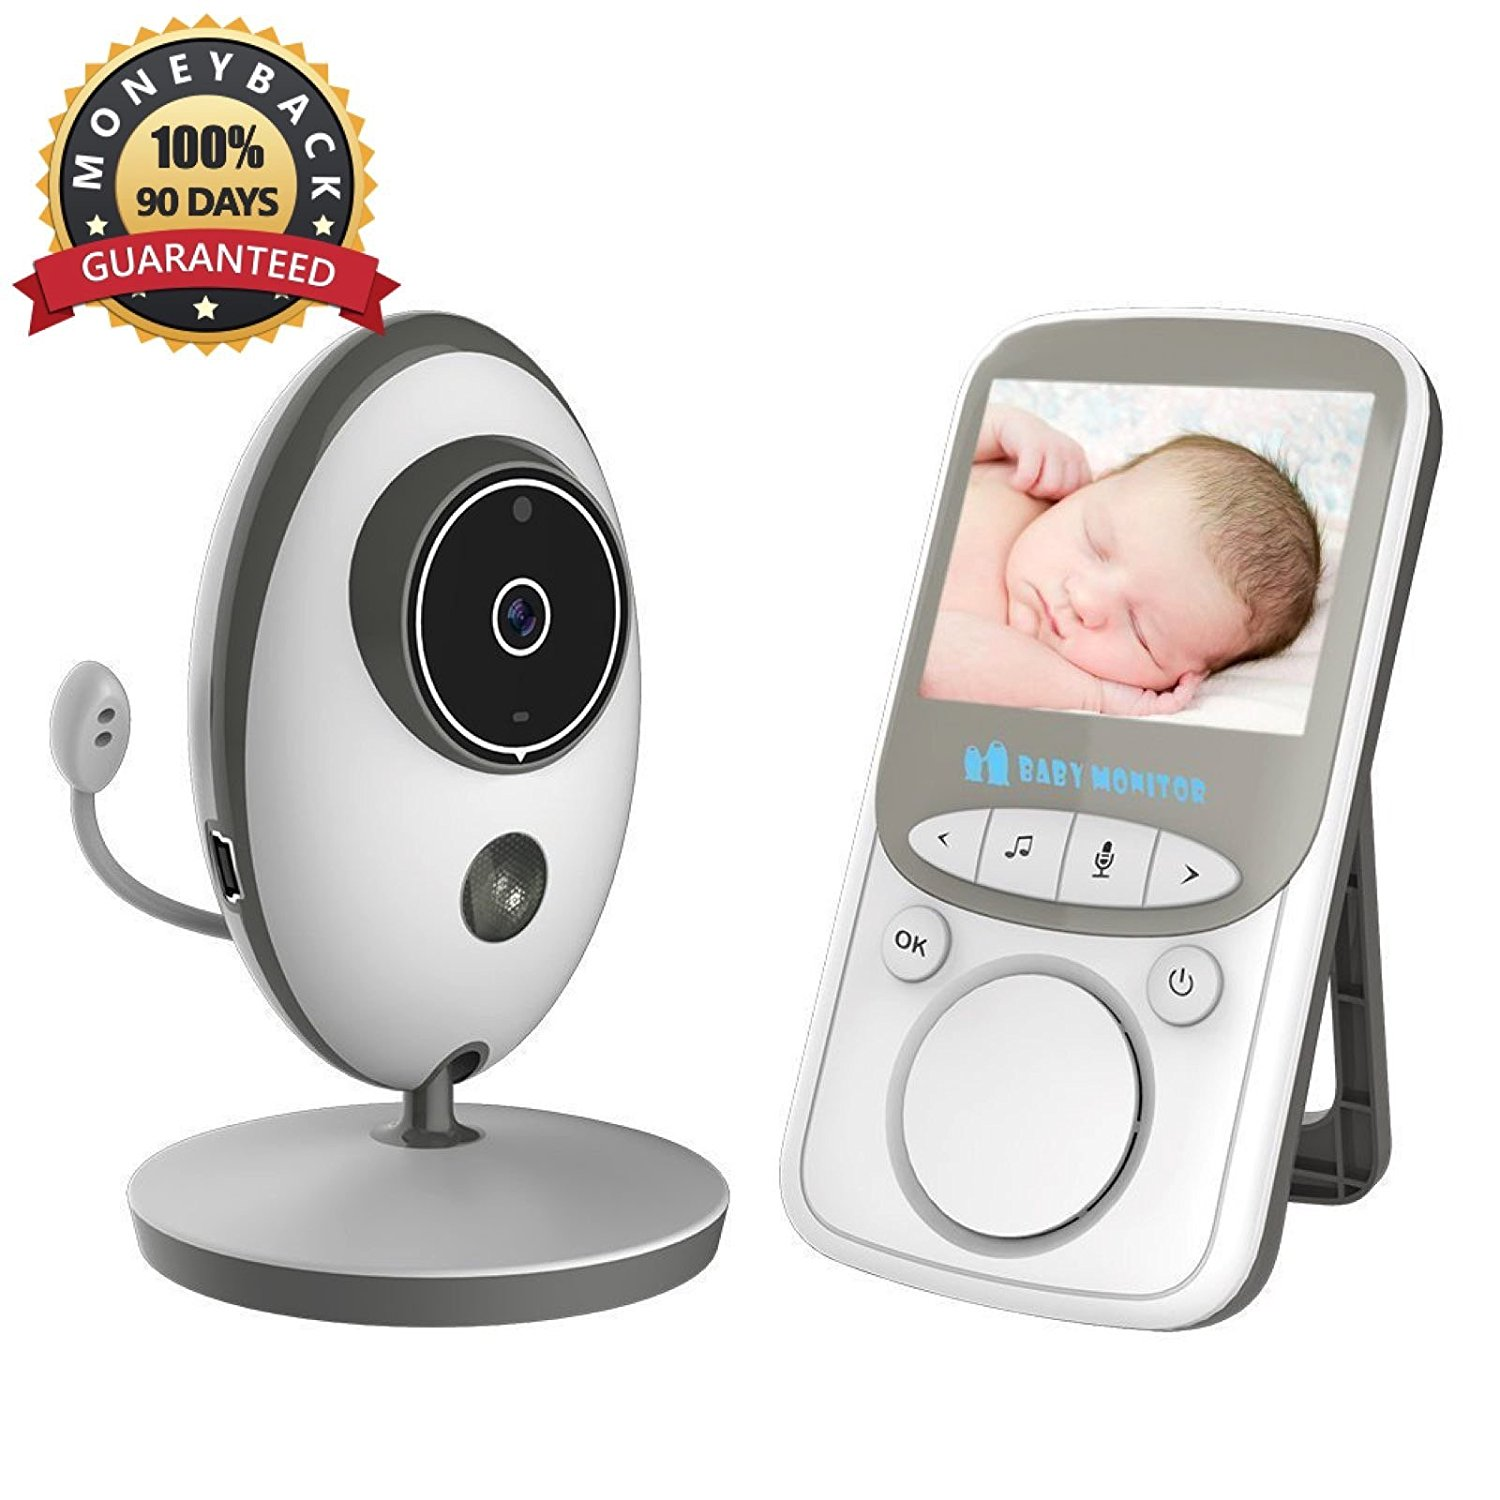 Video Baby Monitor Wireless with Digital Camera,Anmade 2 Way Talkback, 2.4inch Screen Night Vision Temperature Monitoring Lullabies Long Range and High Capacity Battery for Security